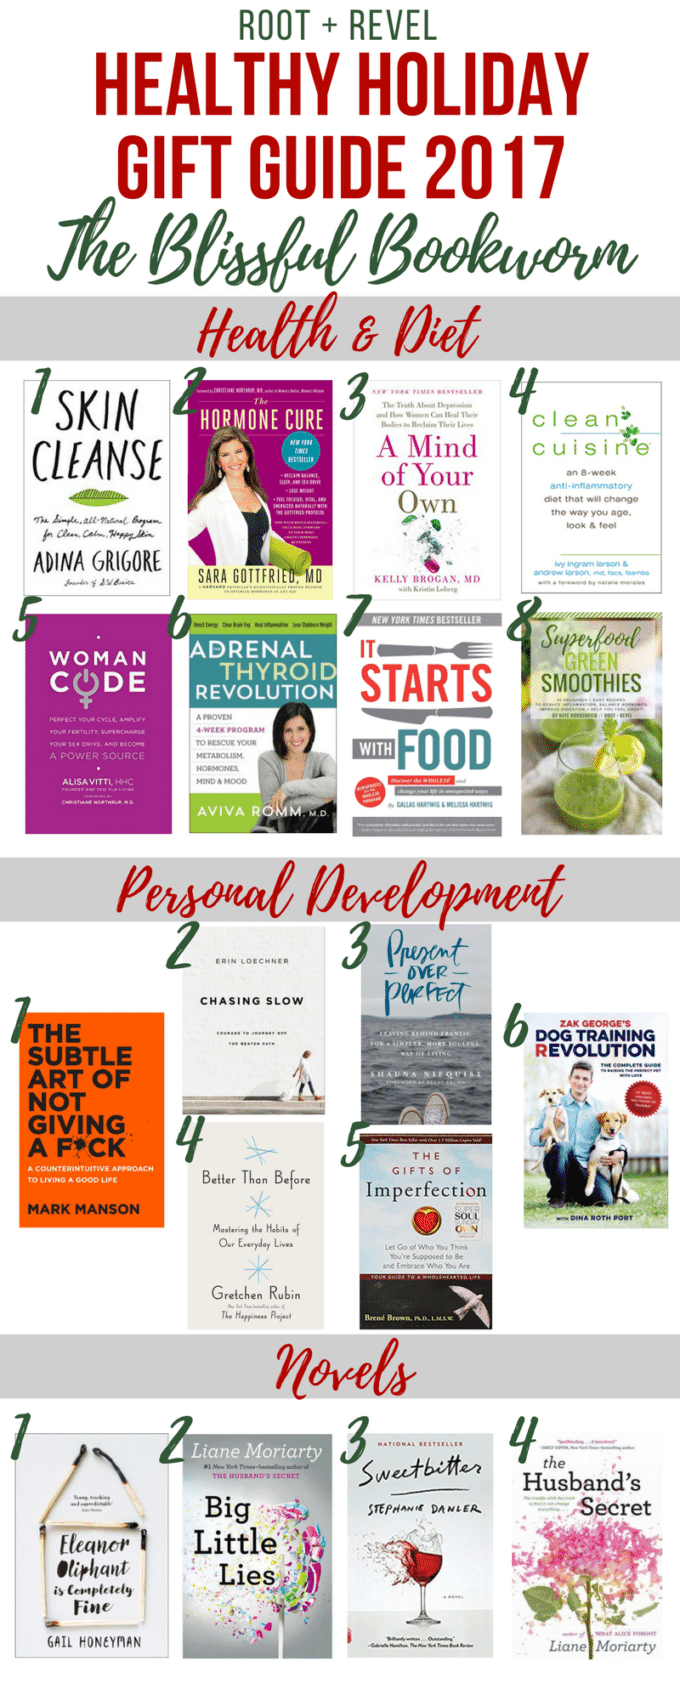 Stumped what to get your friends and family this holiday season? We've put together a comprehensive holiday gift giving guide rooted in healthy, eco-conscious and sustainable living that will inspire the perfect gift for anyone in your life: the conscientious cook, the domestic dame, the green goddess, the tree hugging techie or the blissful bookworm!